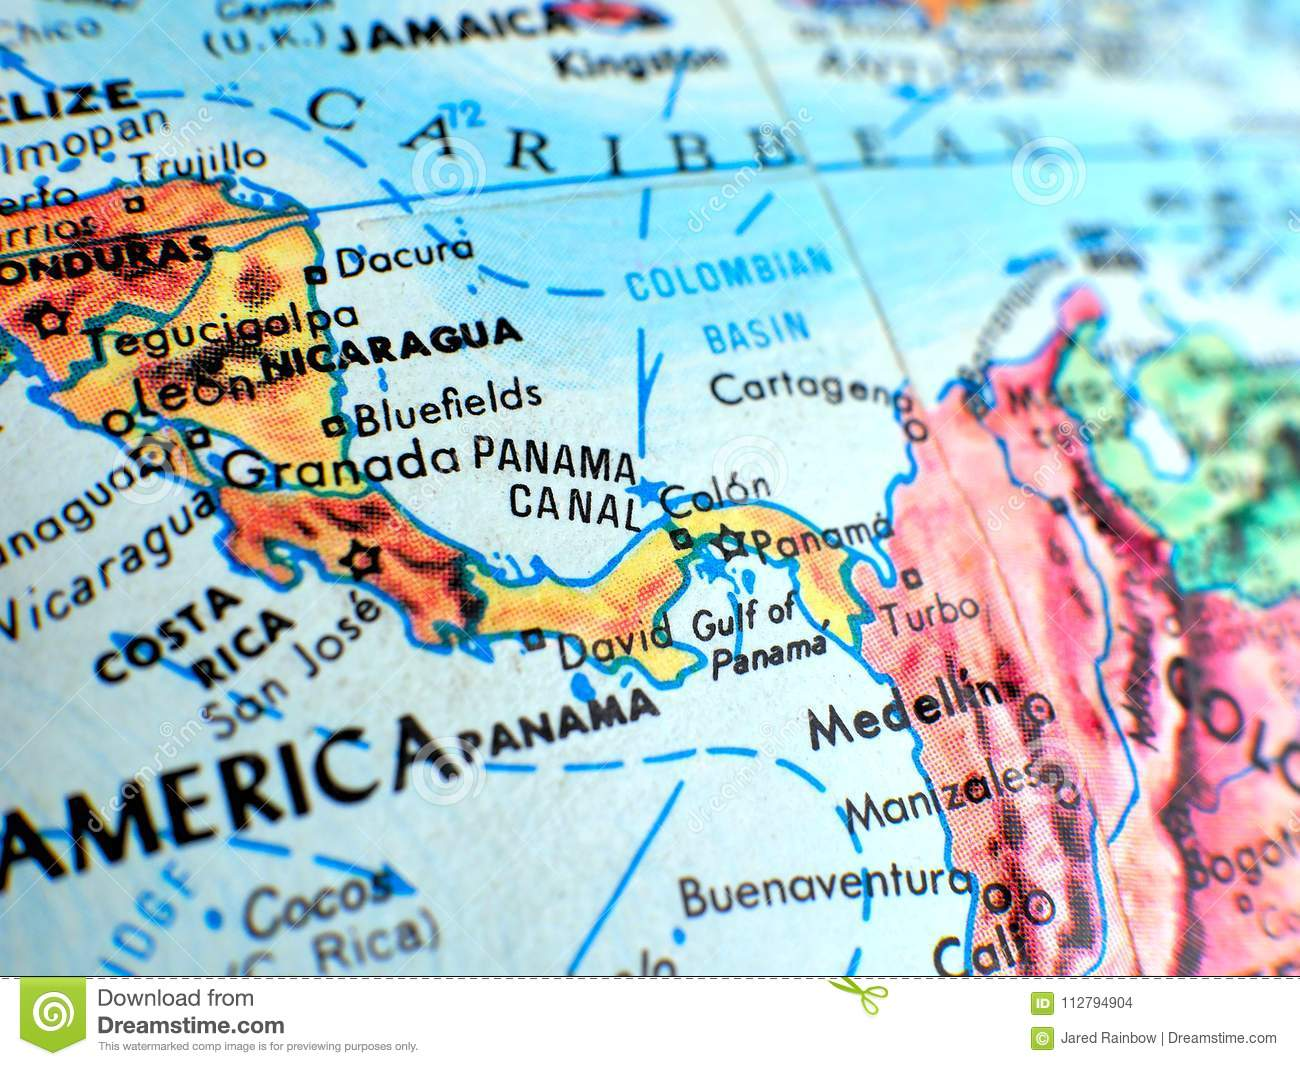 Picture of: Panama Focus Macro Shot On Globe Map For Travel Blogs Social Media Website Banners And Backgrounds Stock Photo Image Of Geographical Globe 112794904